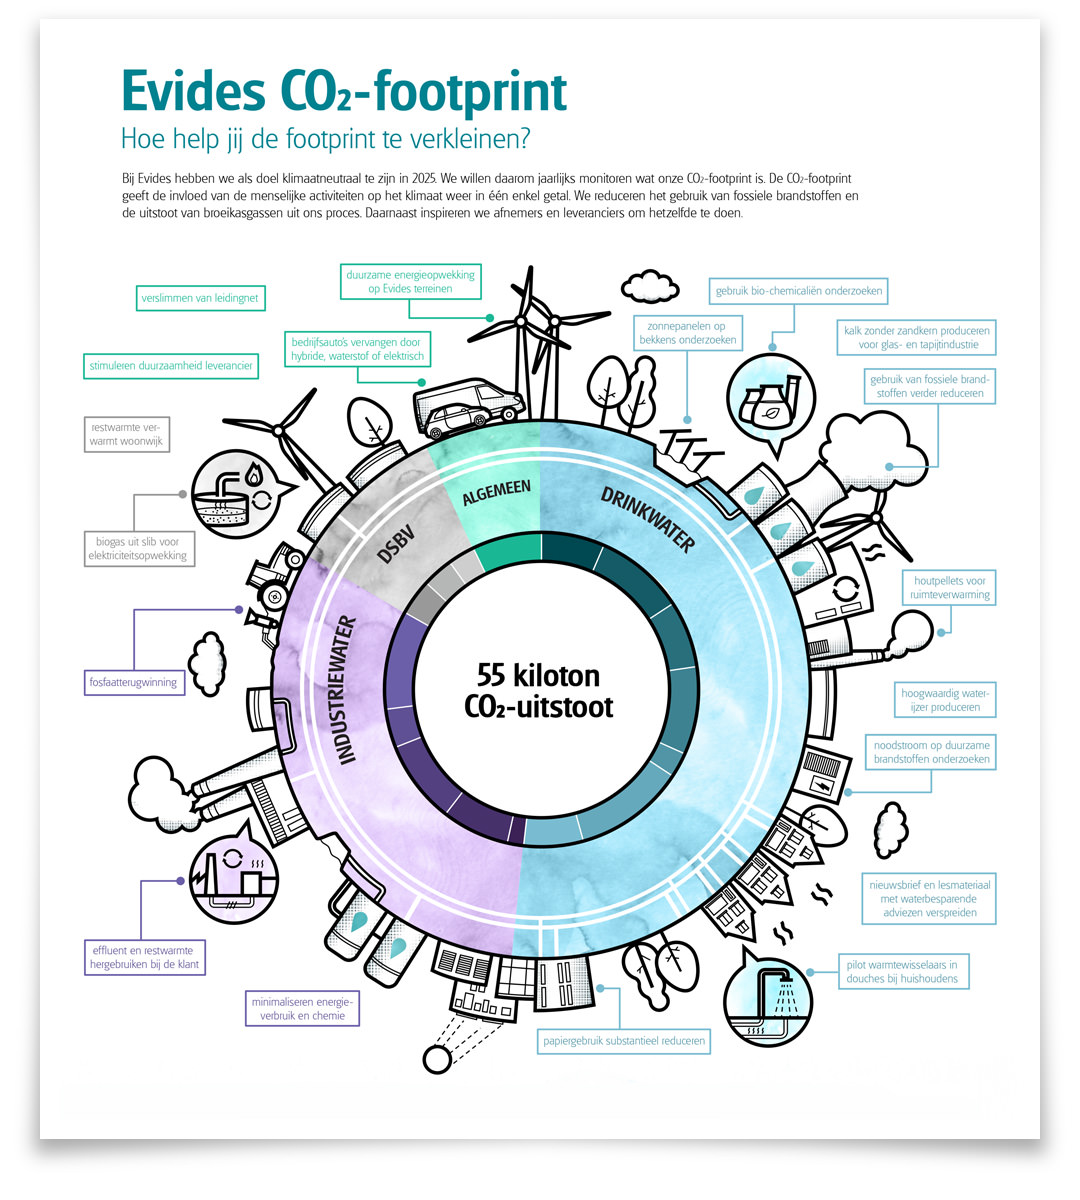 evides-infographic-footprint